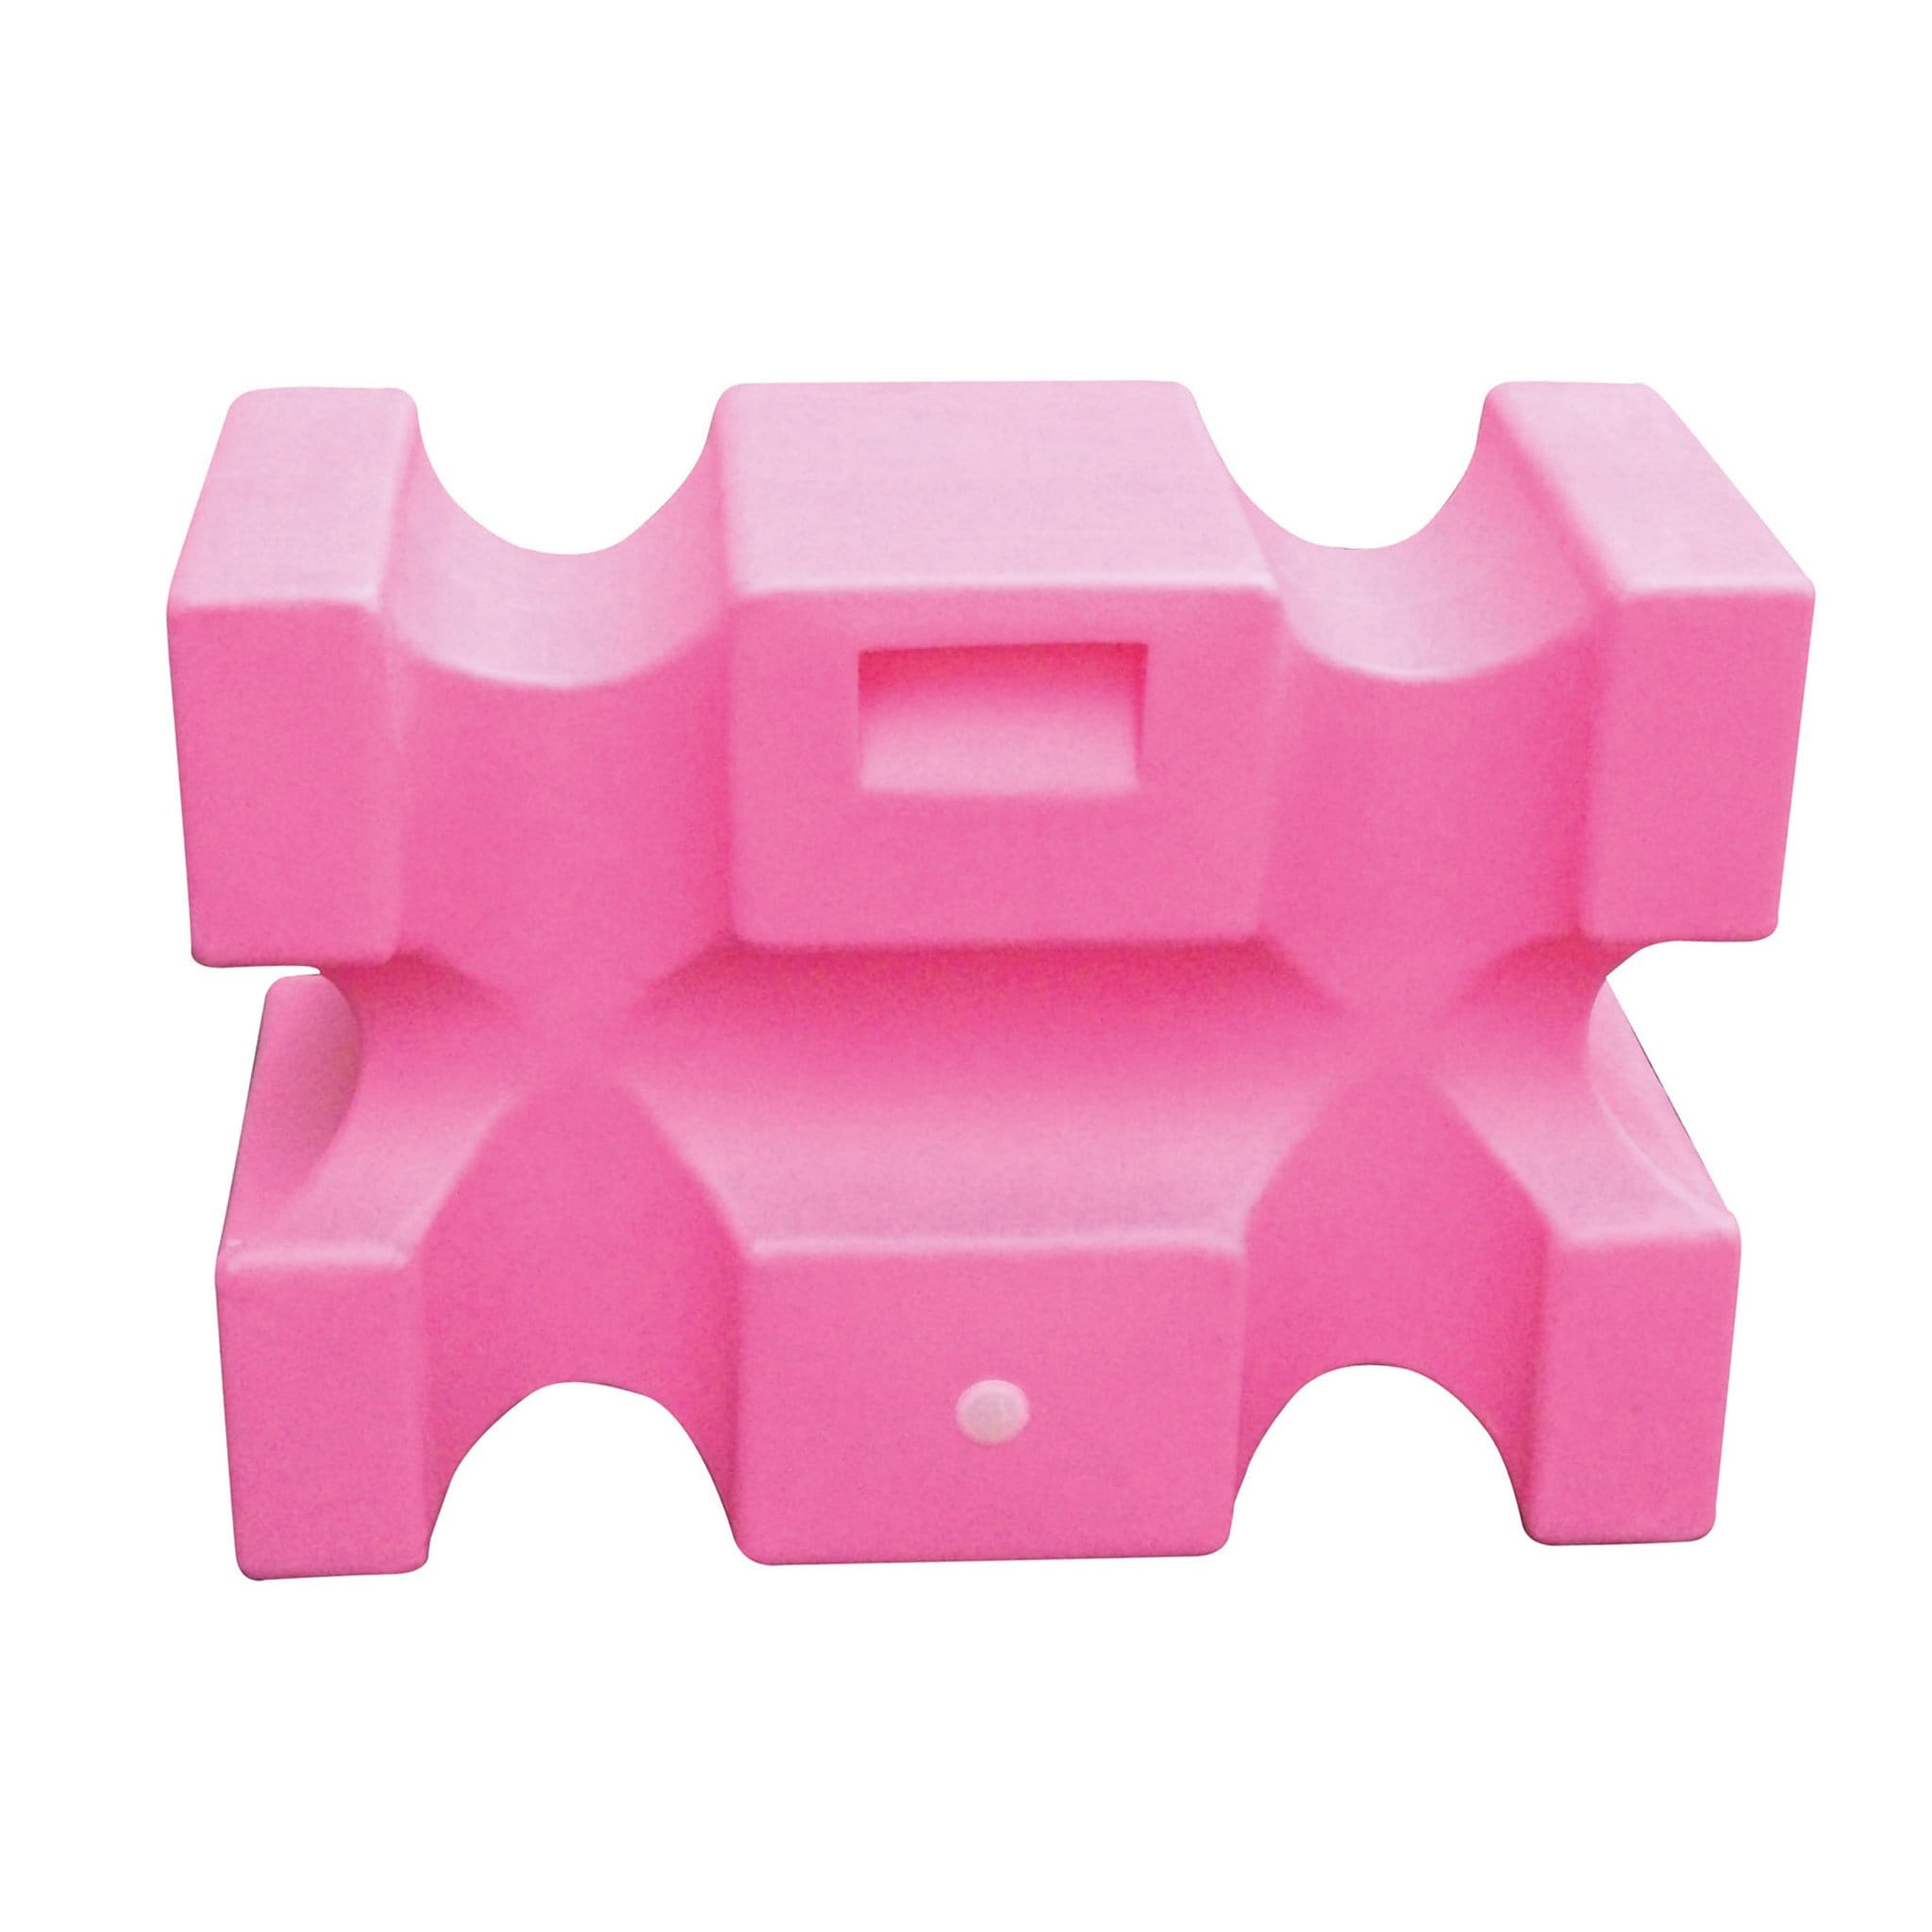 Classic Showjumps Pro-Jump Parallel Block Pink EXC0245.